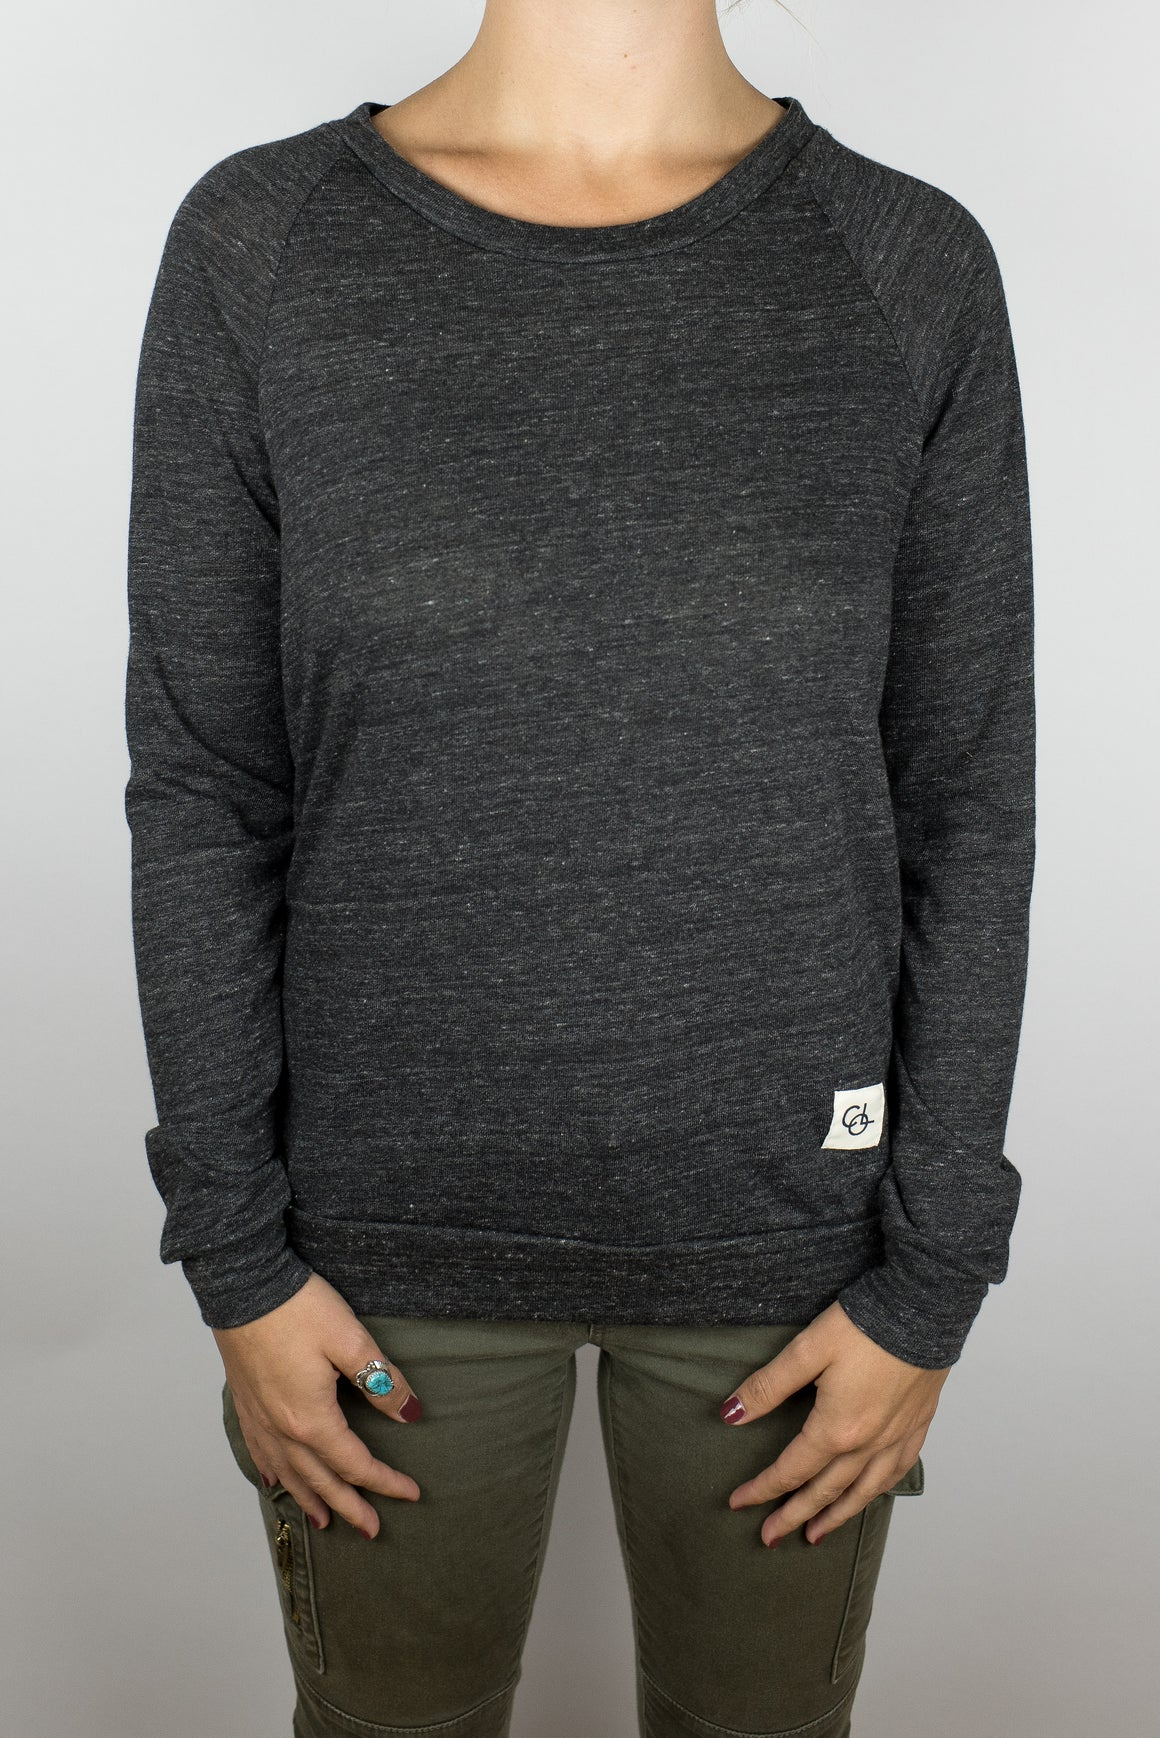 The Rise and Shine Pullover in Black